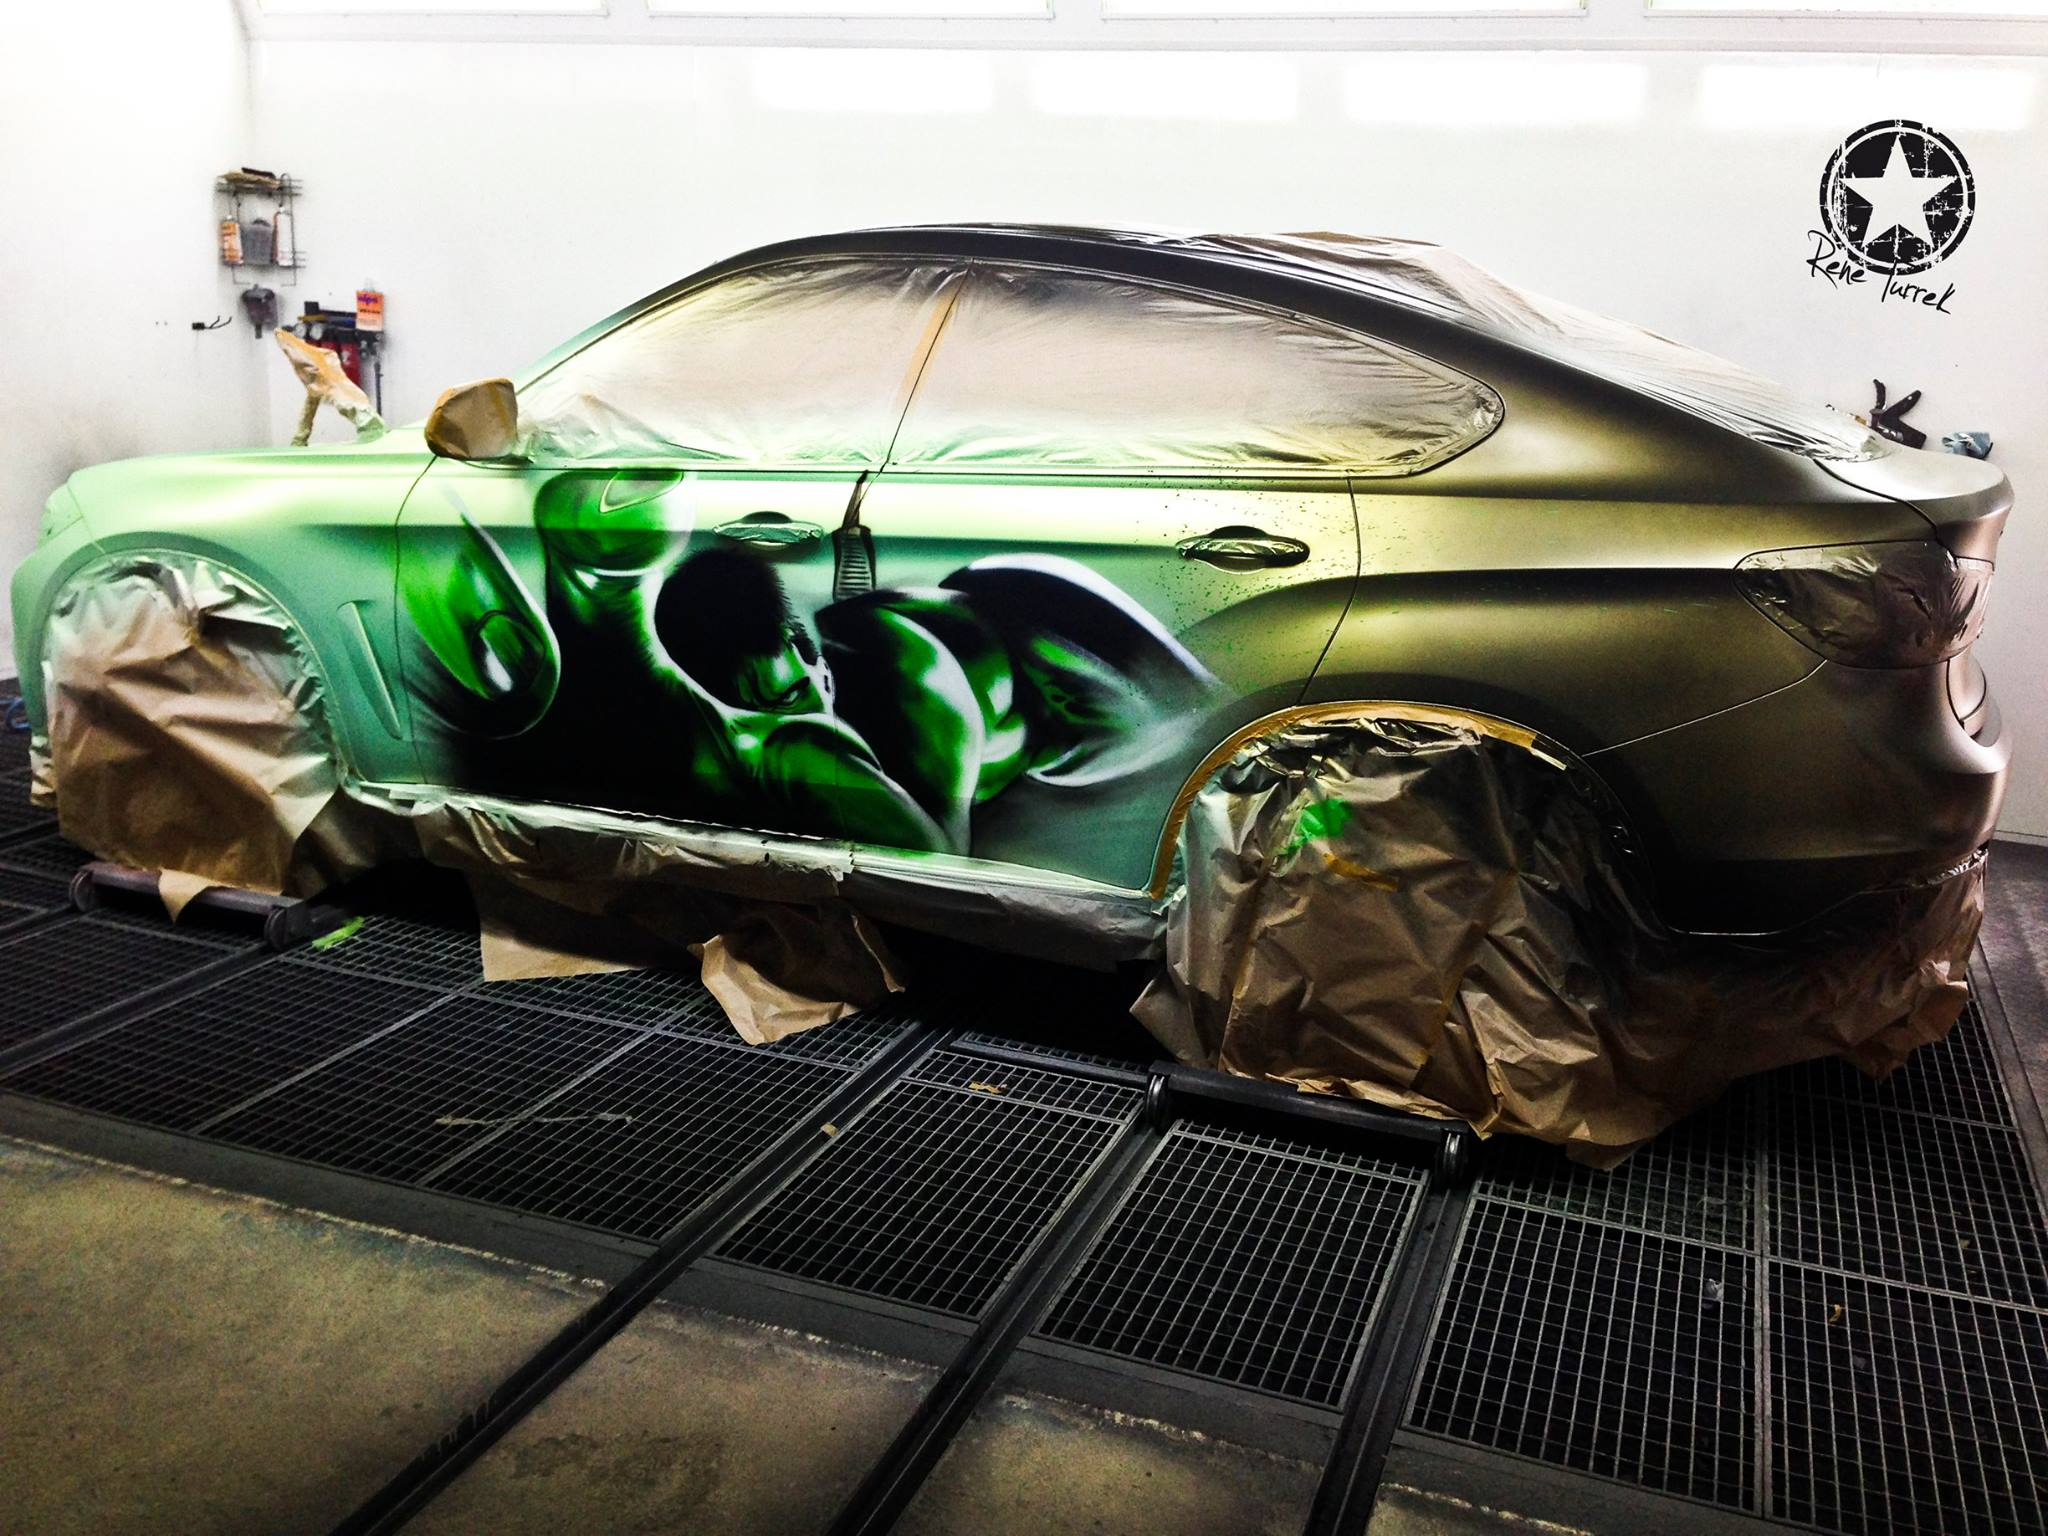 Bmw X6 Paintjob Reveals Inner Hulk When You Pour Hot Water